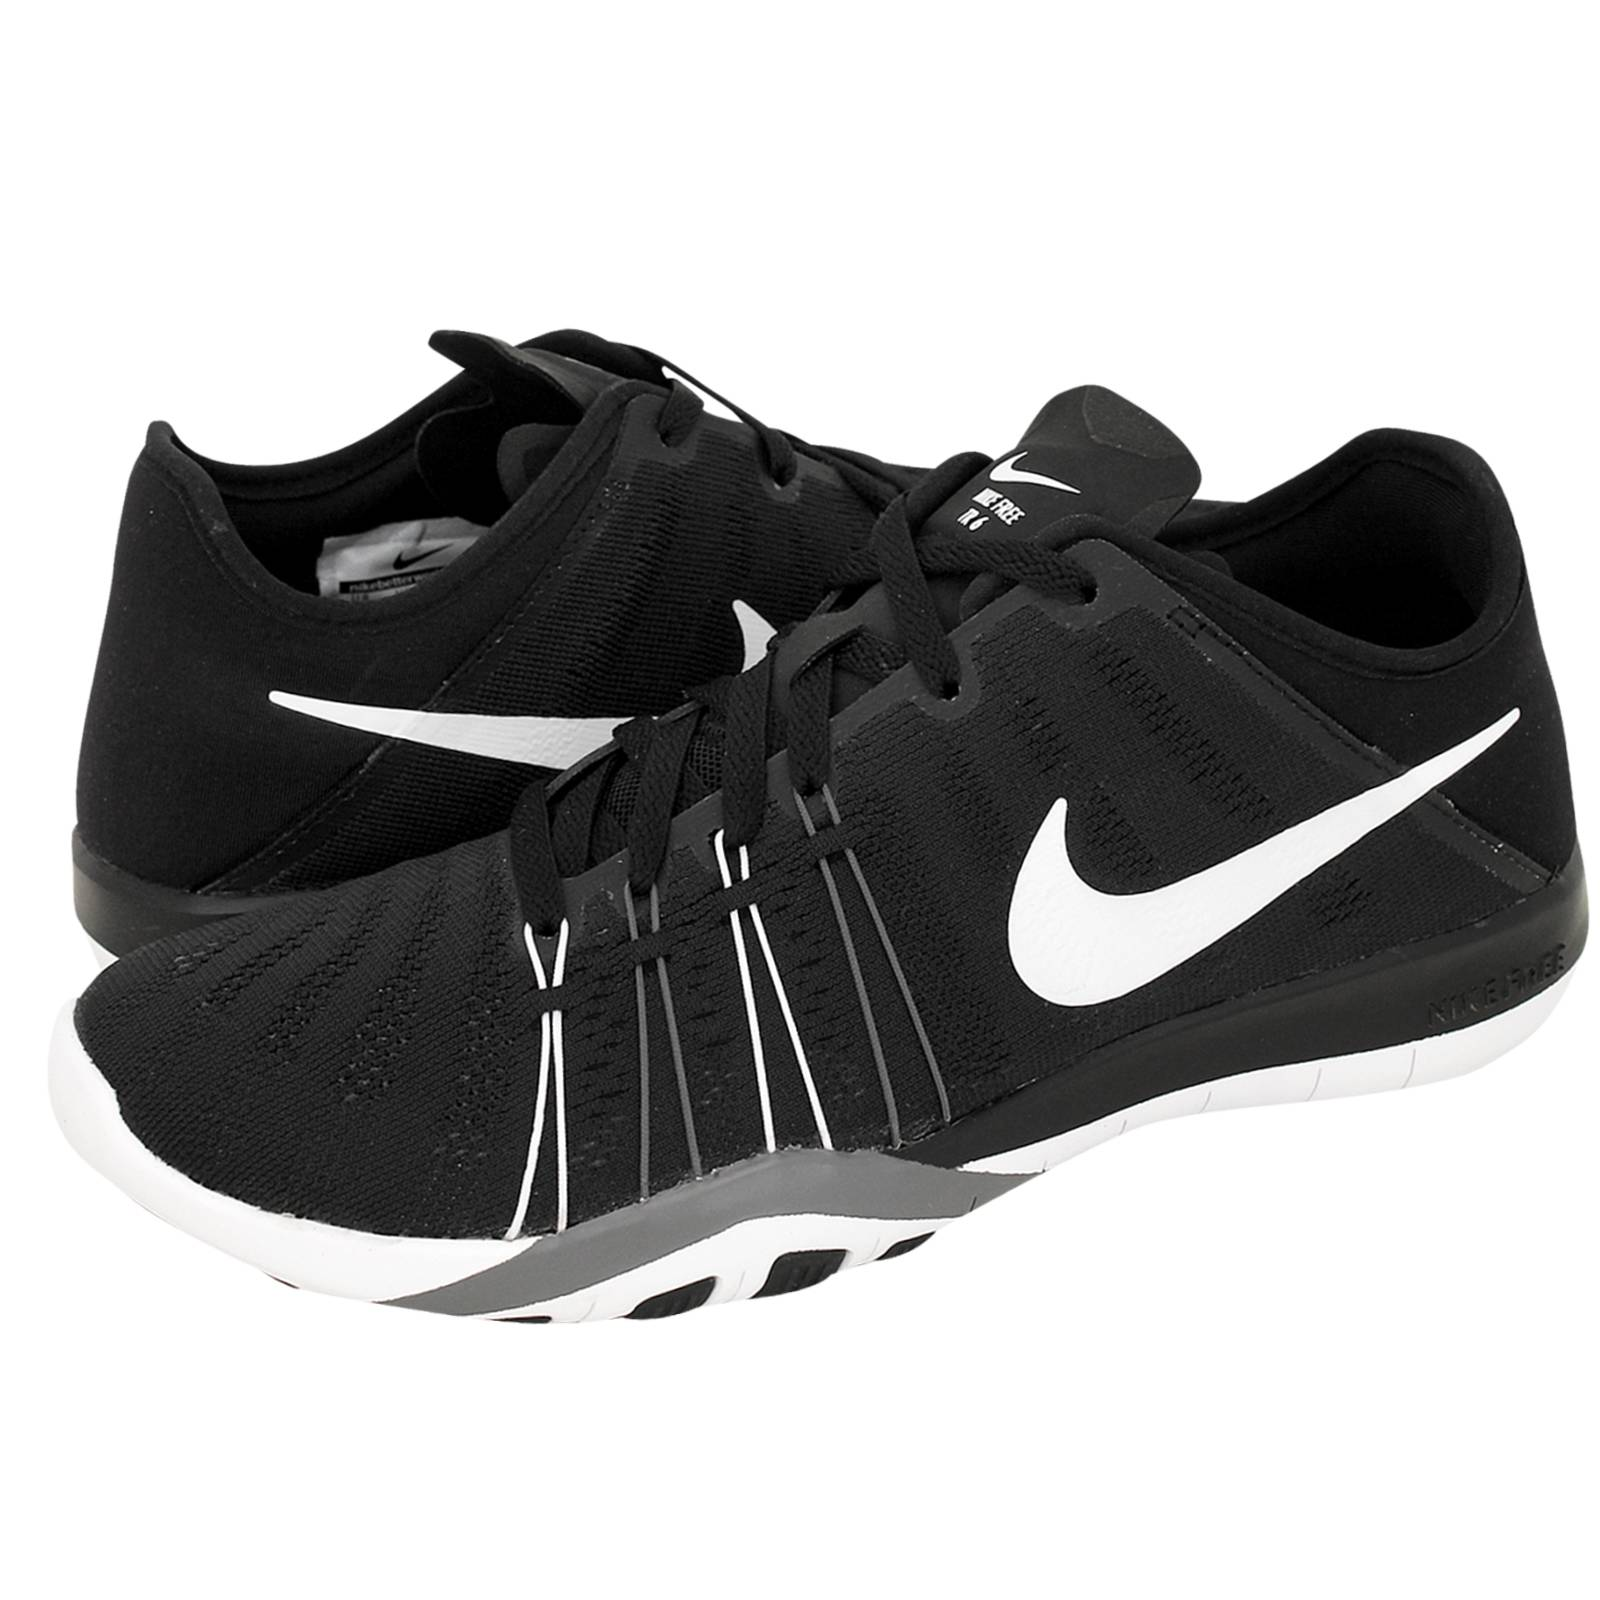 Free TR 6 - Nike Women s athletic shoes made of fabric - Gianna ... c008a8c03